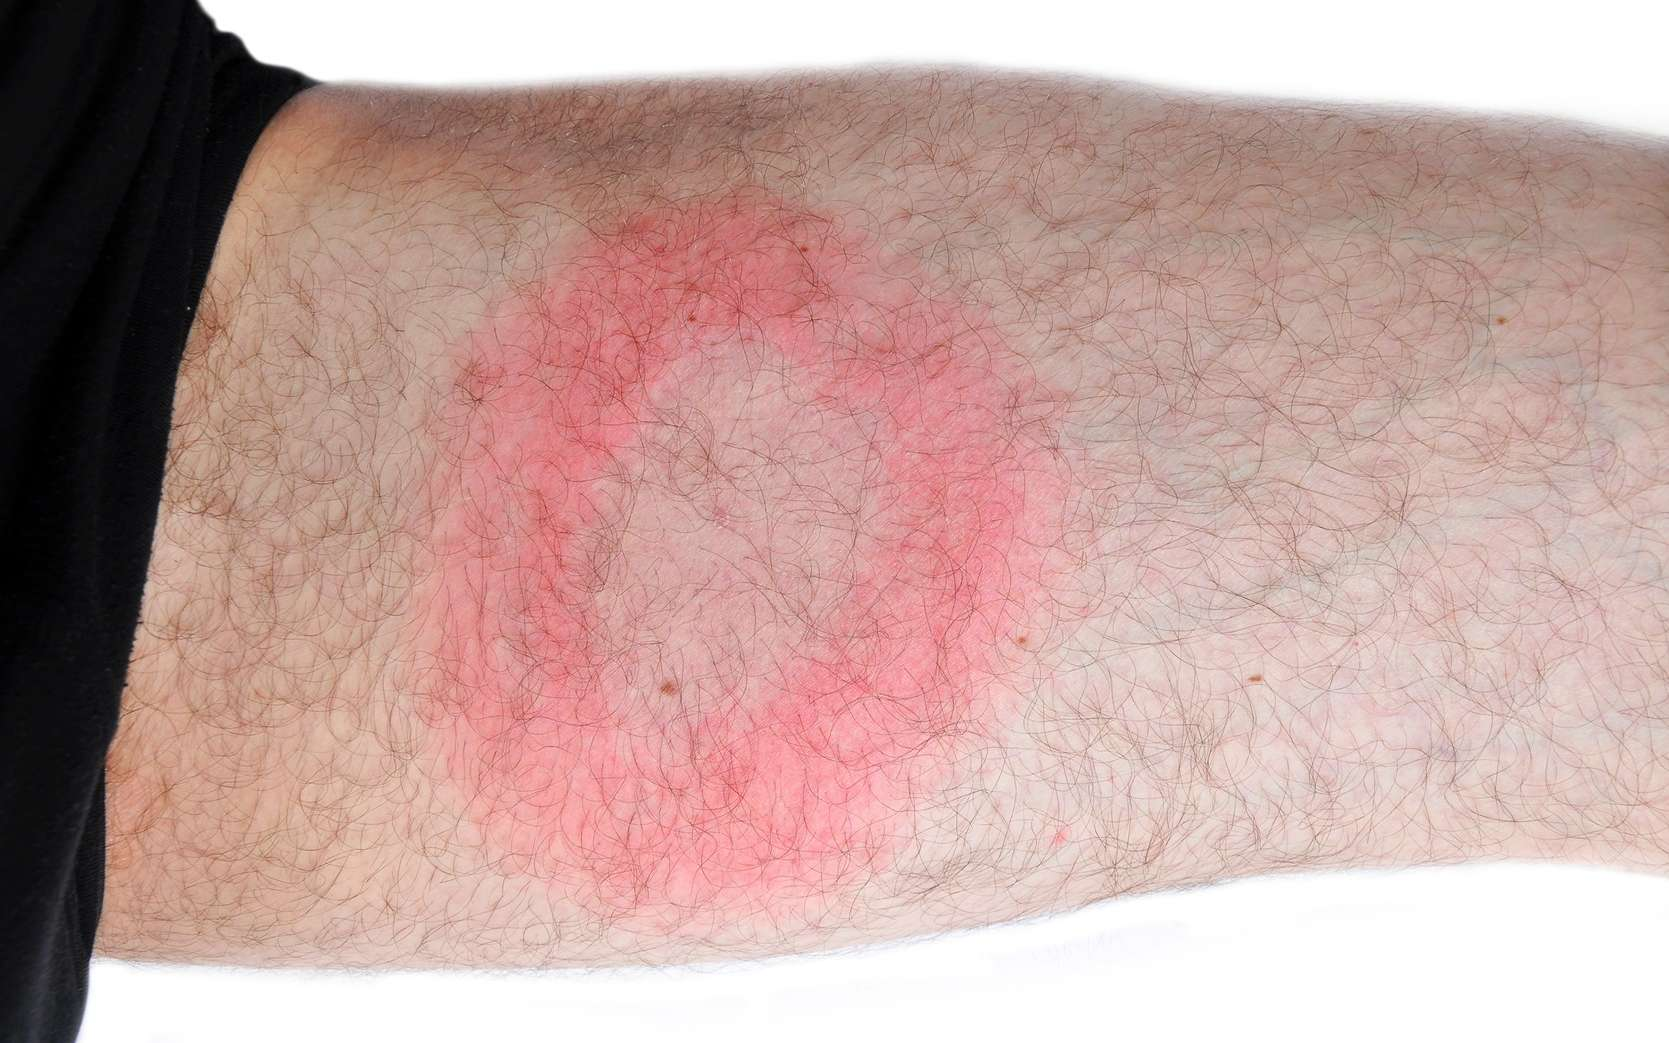 L'infection par Borrelia burdorferi (borréliose de Lyme) peut se manifester par un érythème migrant qui part du point de morsure de la tique. © meryll, Fotolia